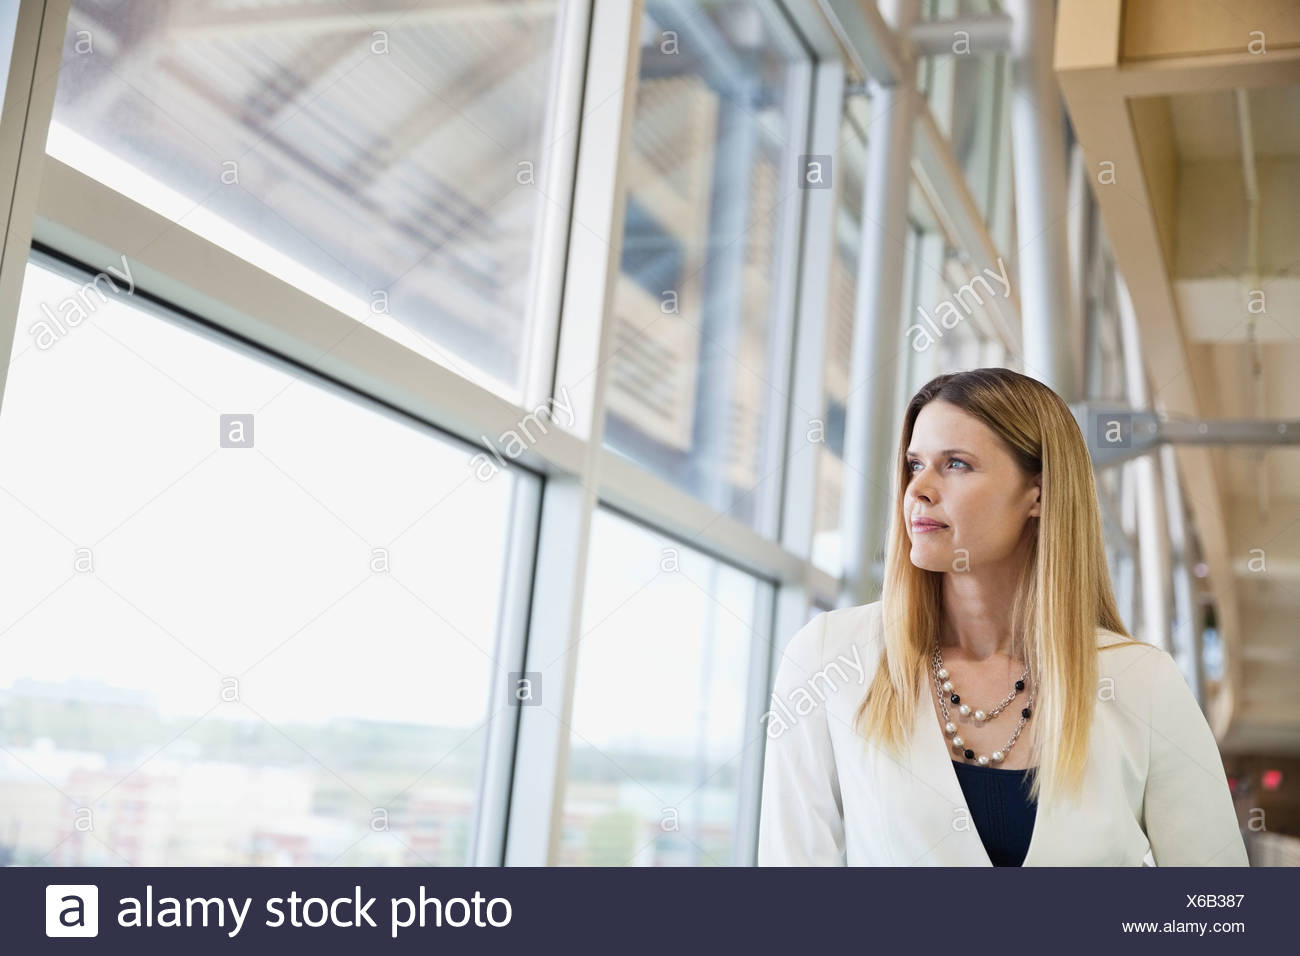 Thoughtful businesswoman looking out window - Stock Image